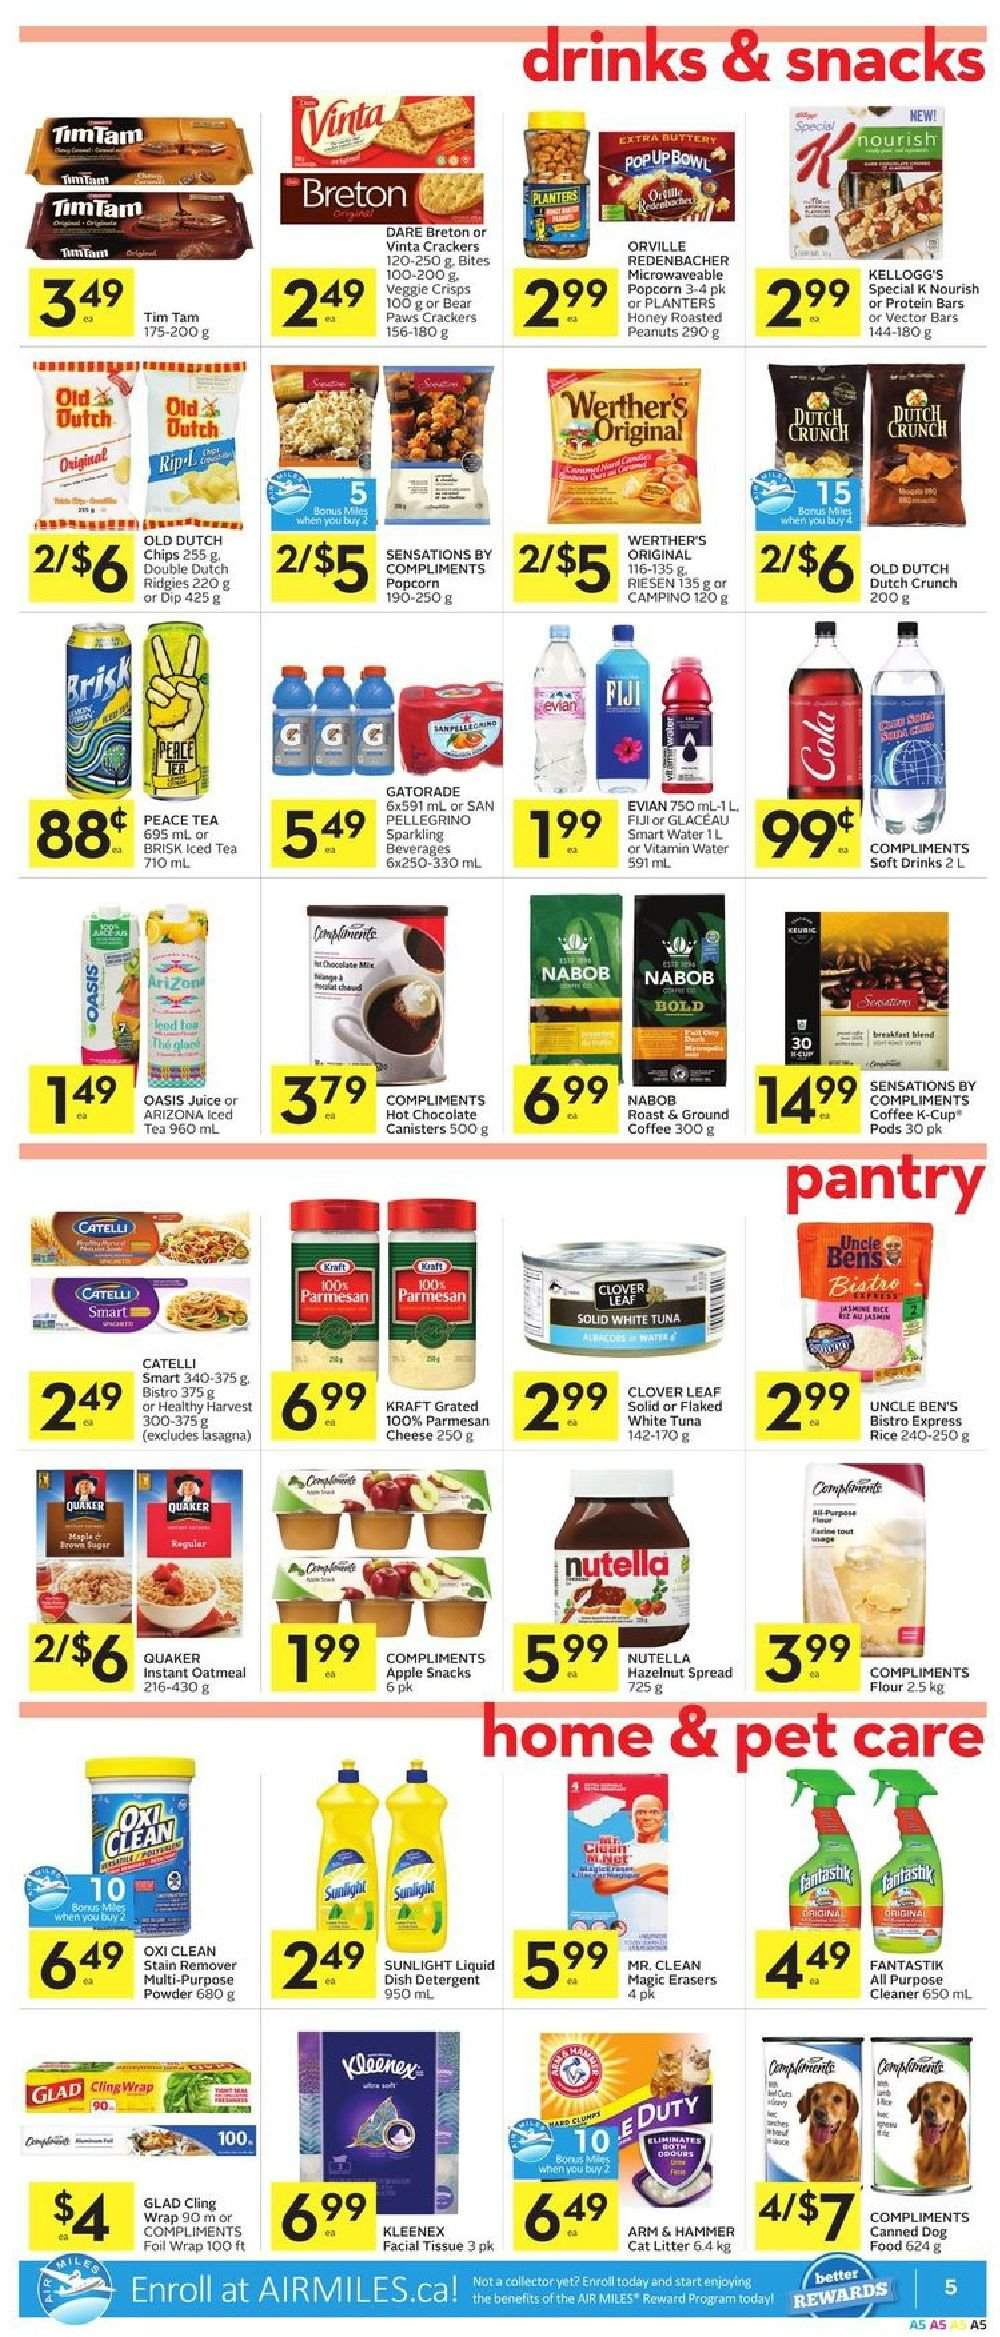 Foodland Flyer  - February 28, 2019 - March 06, 2019. Page 5.